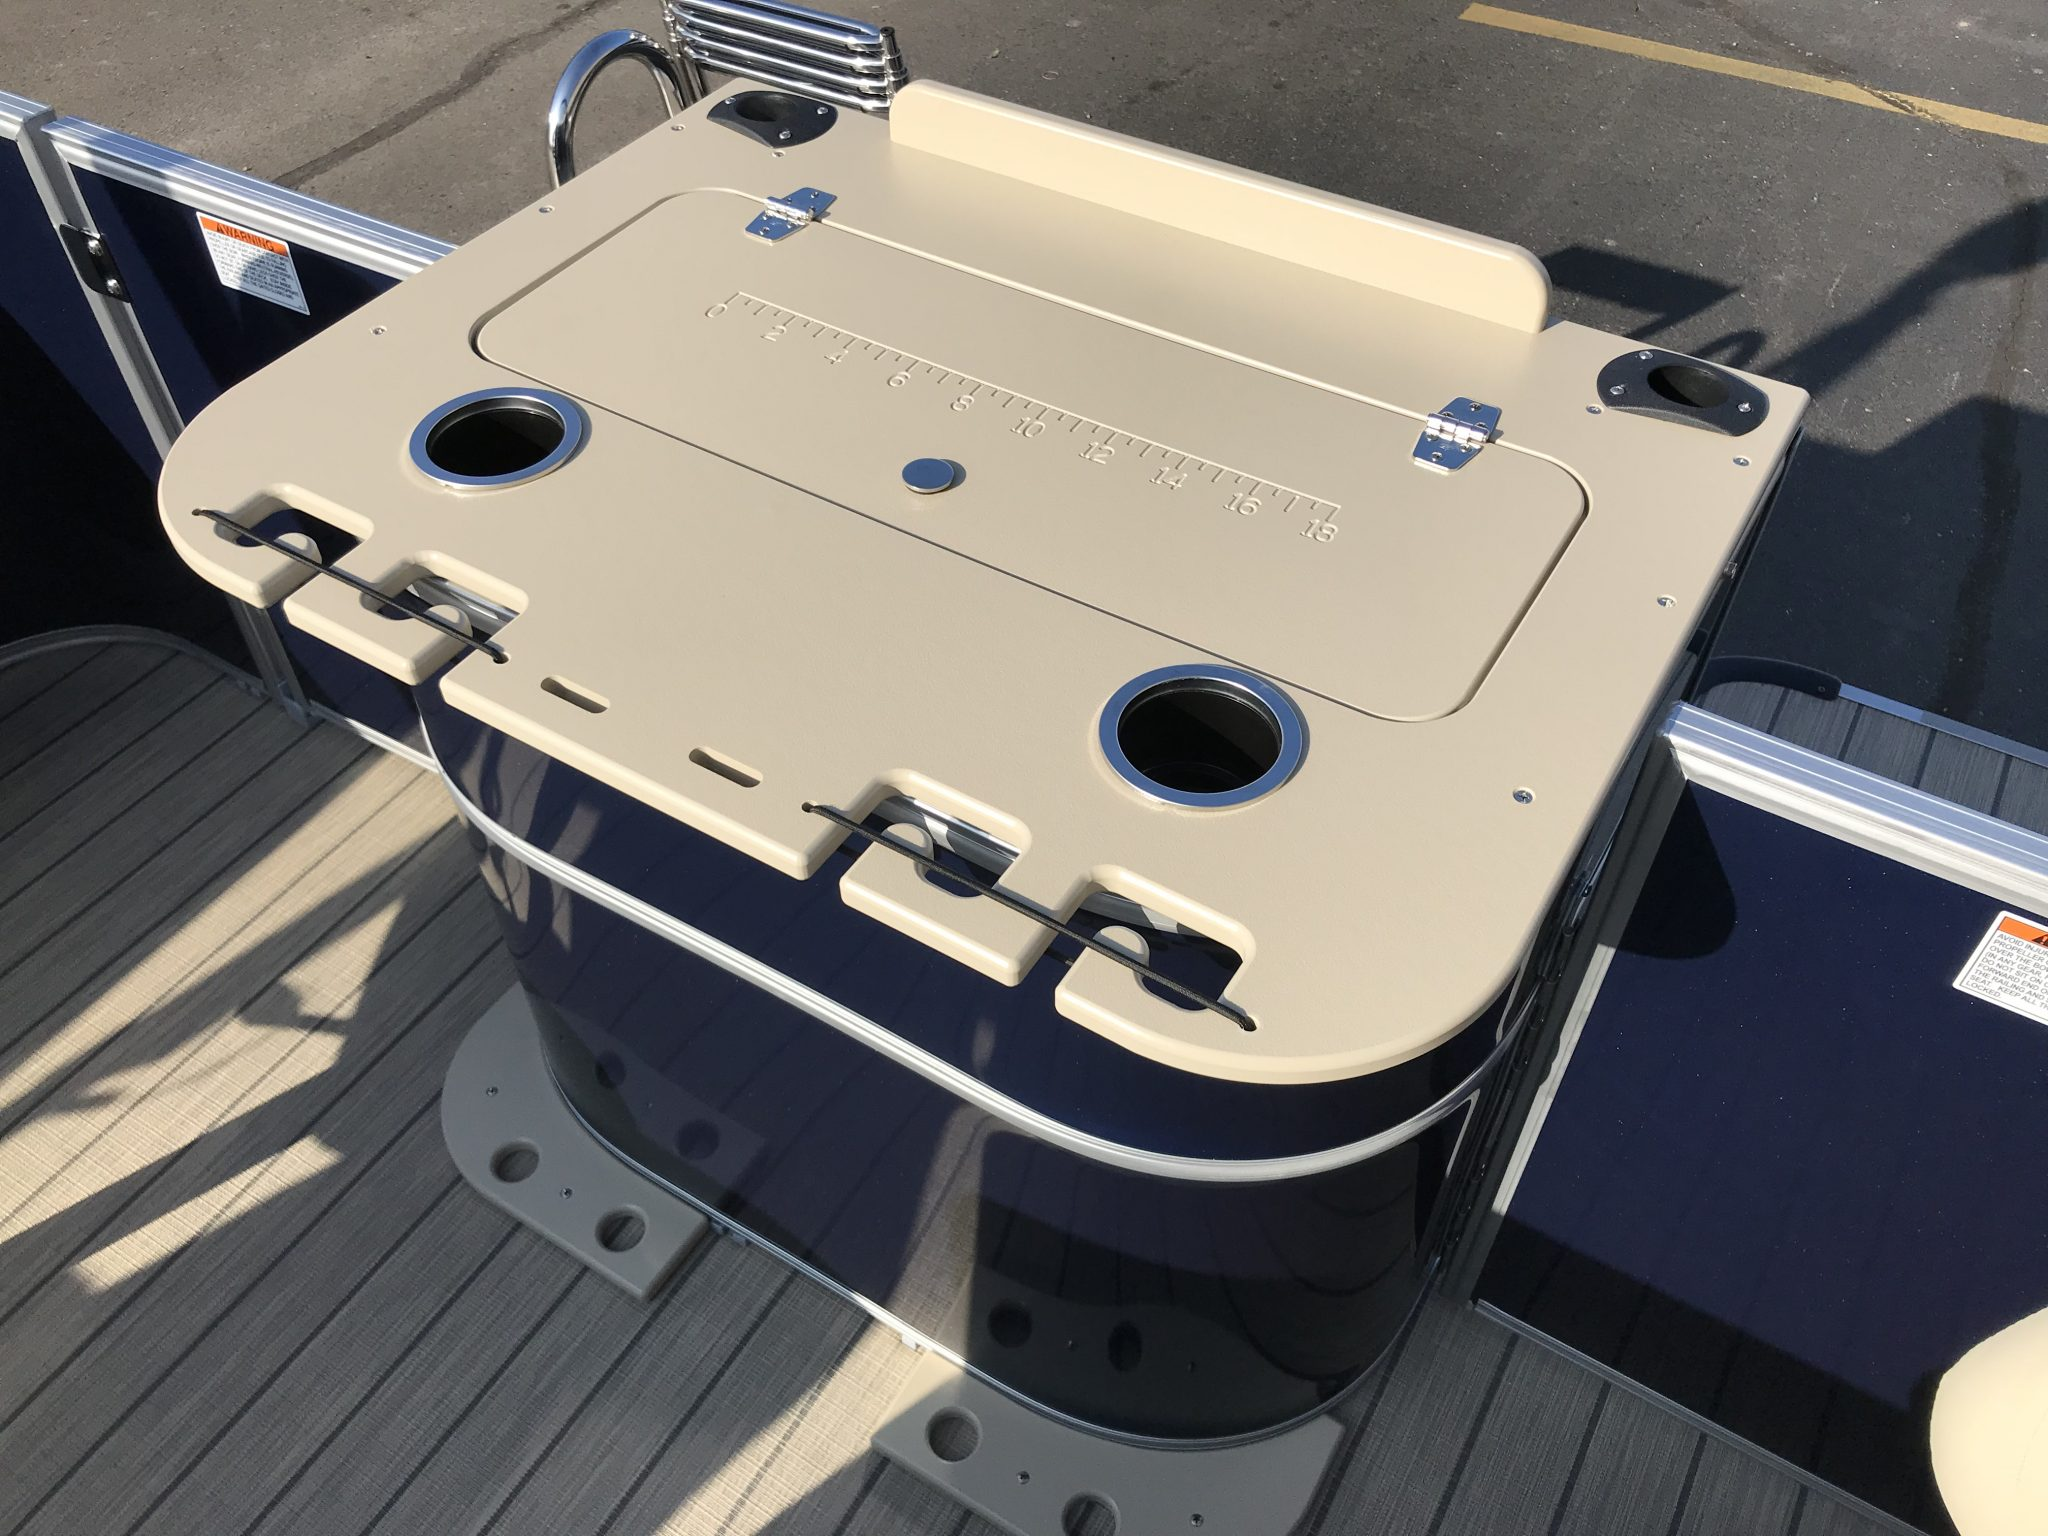 Sylvan 8520 Cruise-n-Fish Livewell and Rod Holders